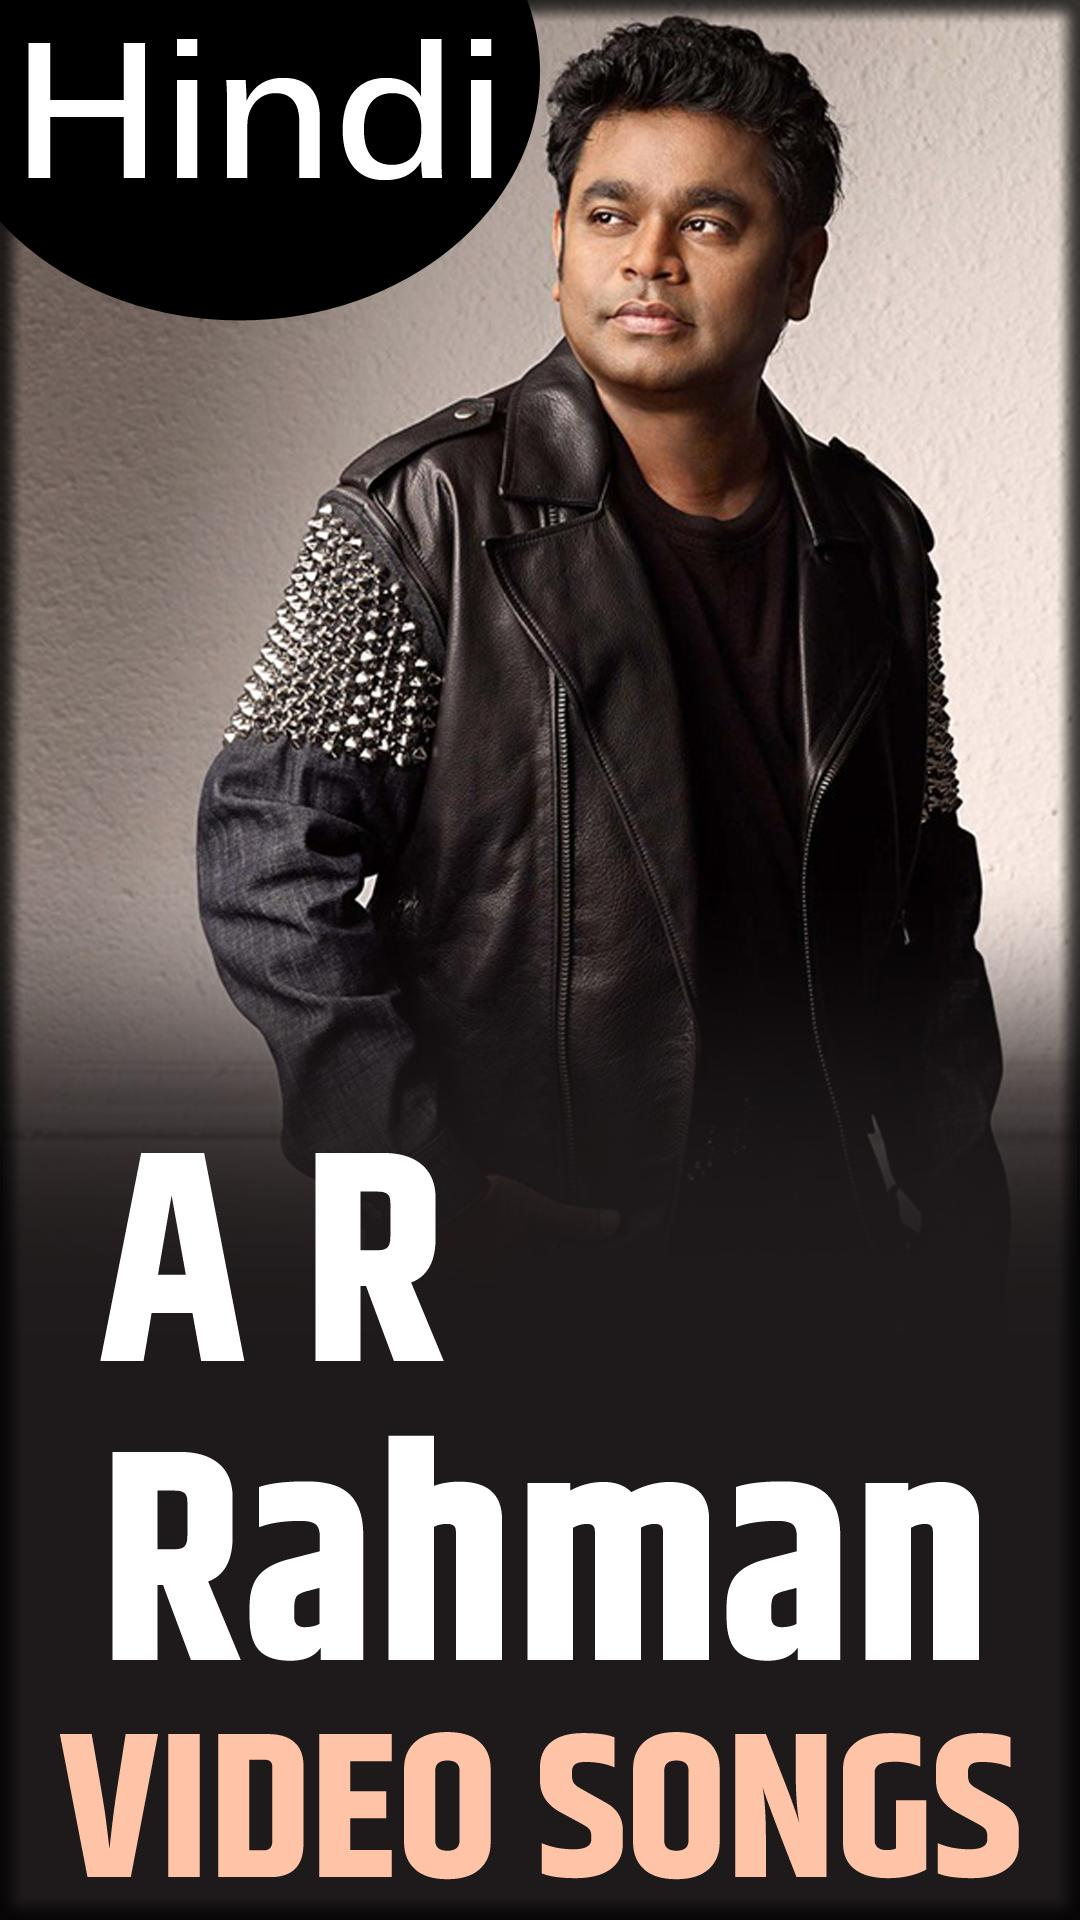 Ar Rahman Hindi Songs App Hindi Hit Songs For Android Apk Download So go ahead, hit the play button and enjoy the music. apkpure com